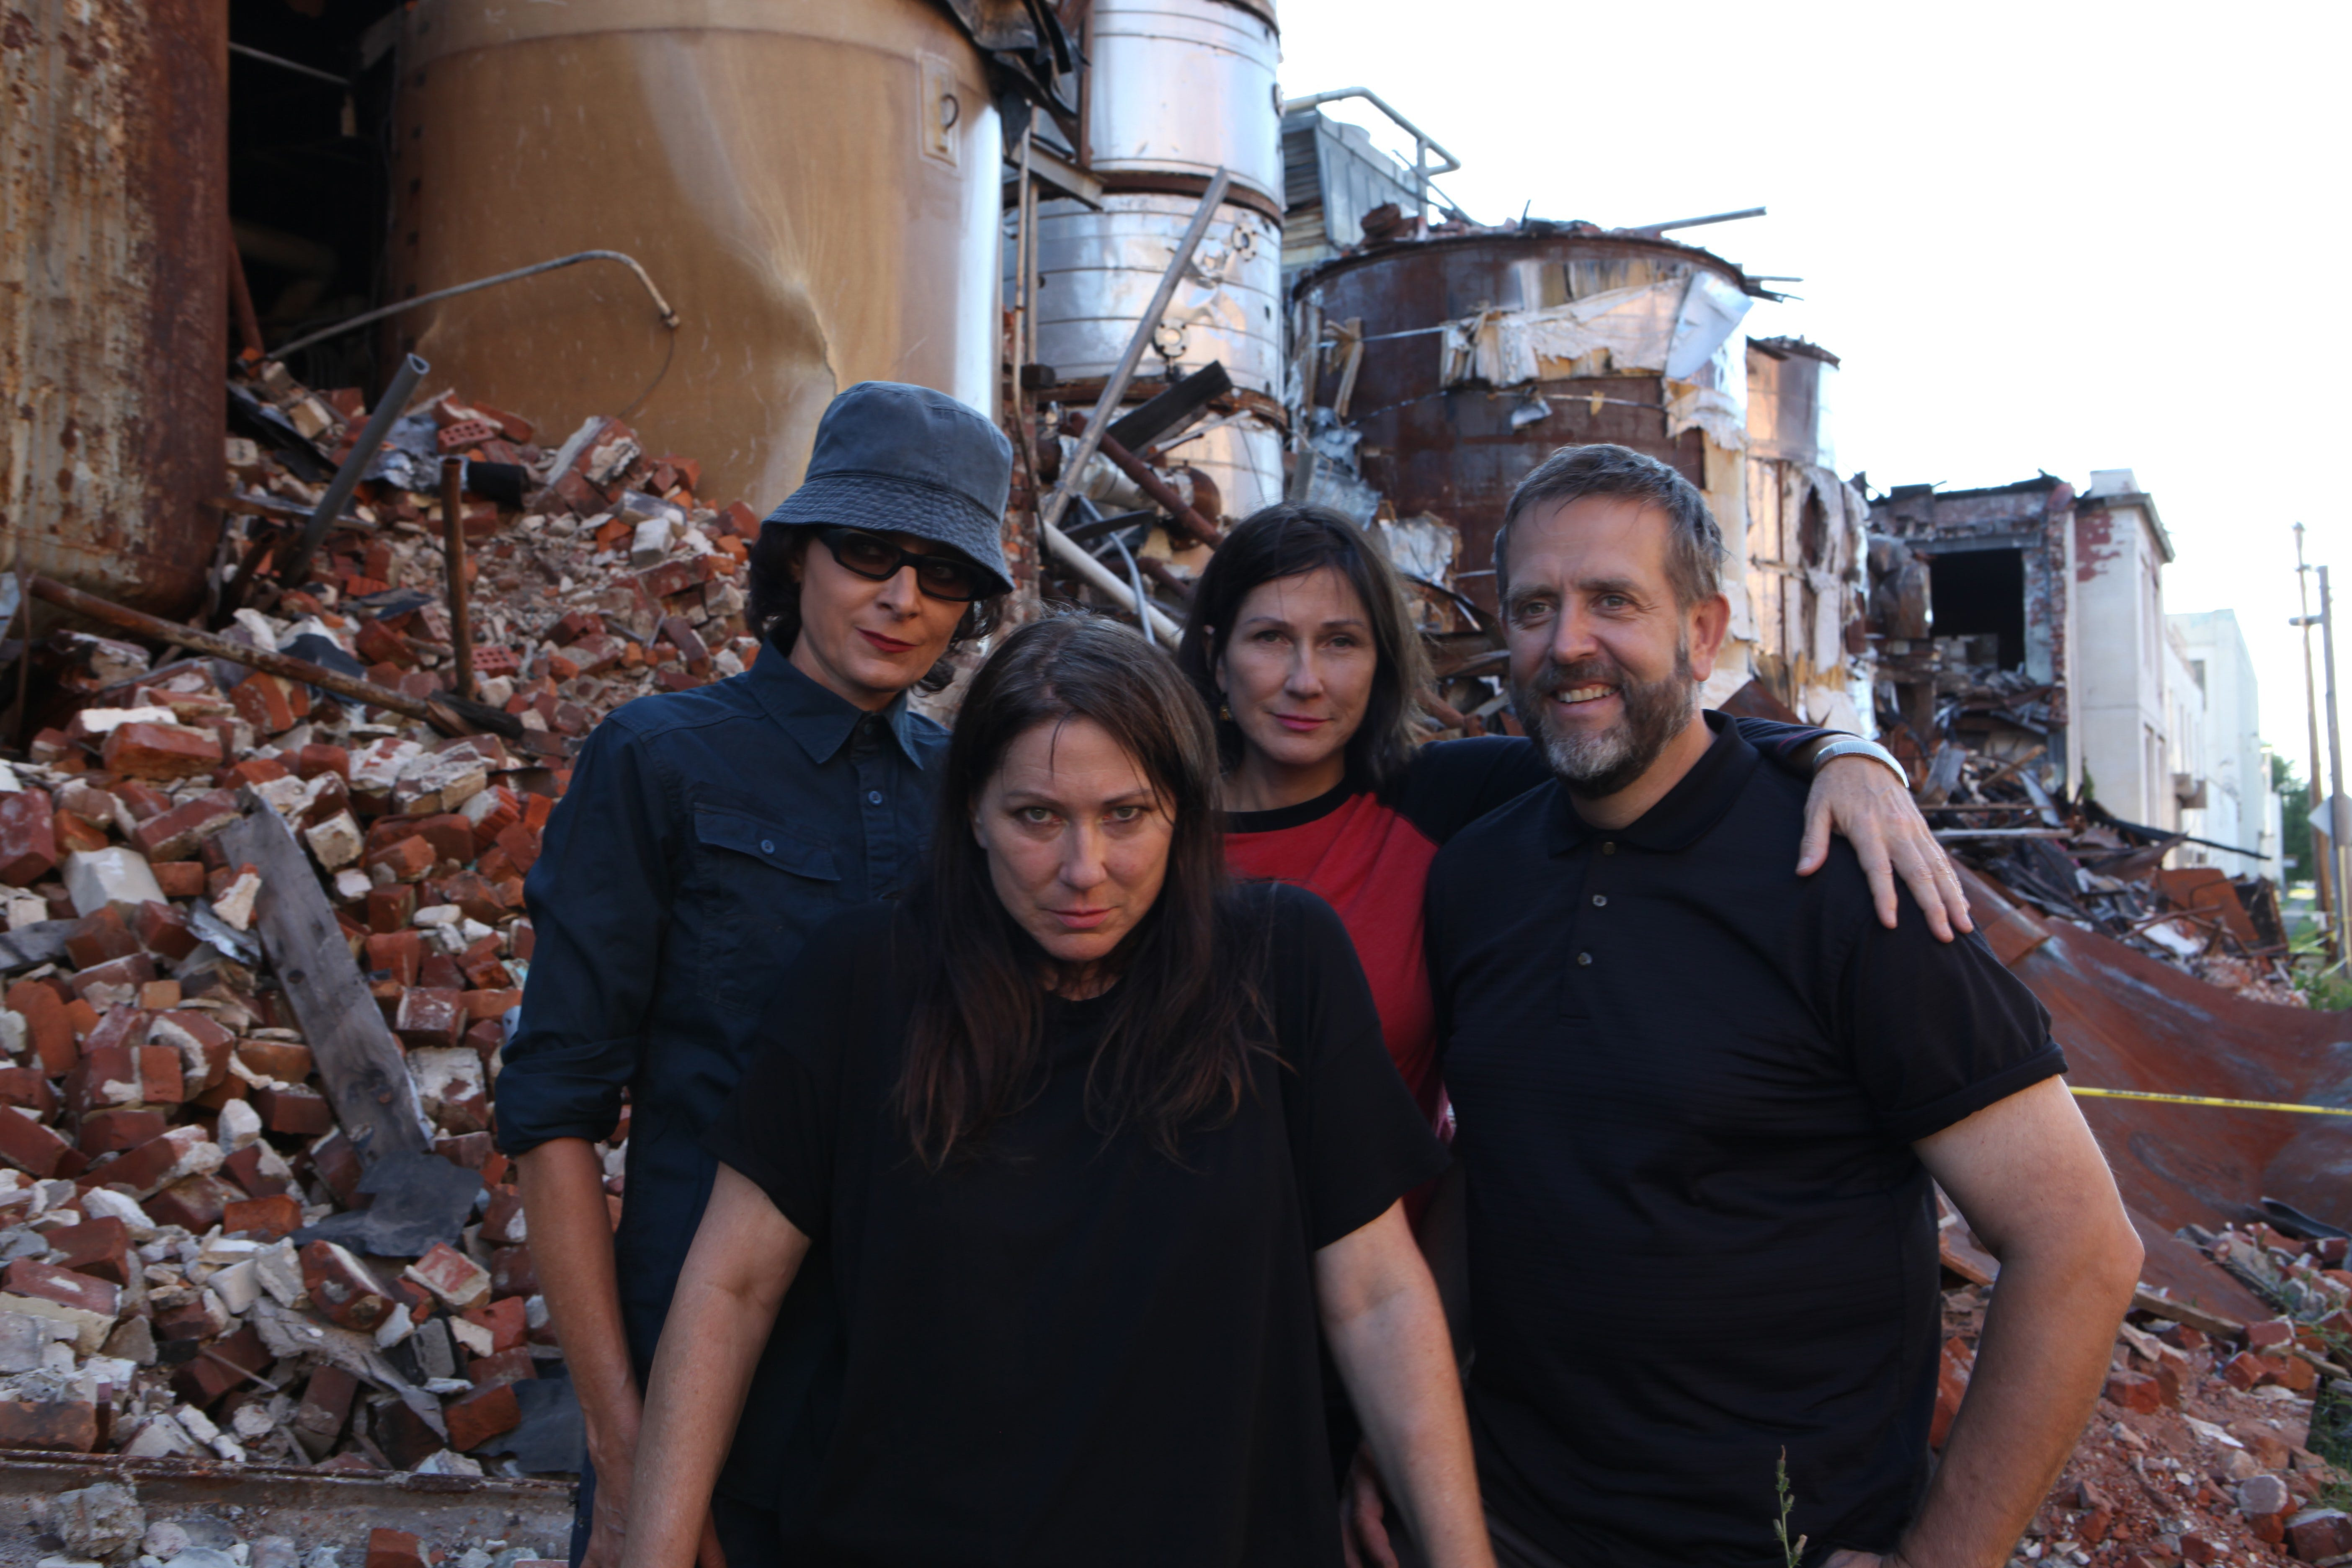 The Breeders, an alternative rock band, hails from Dayton, Ohio.